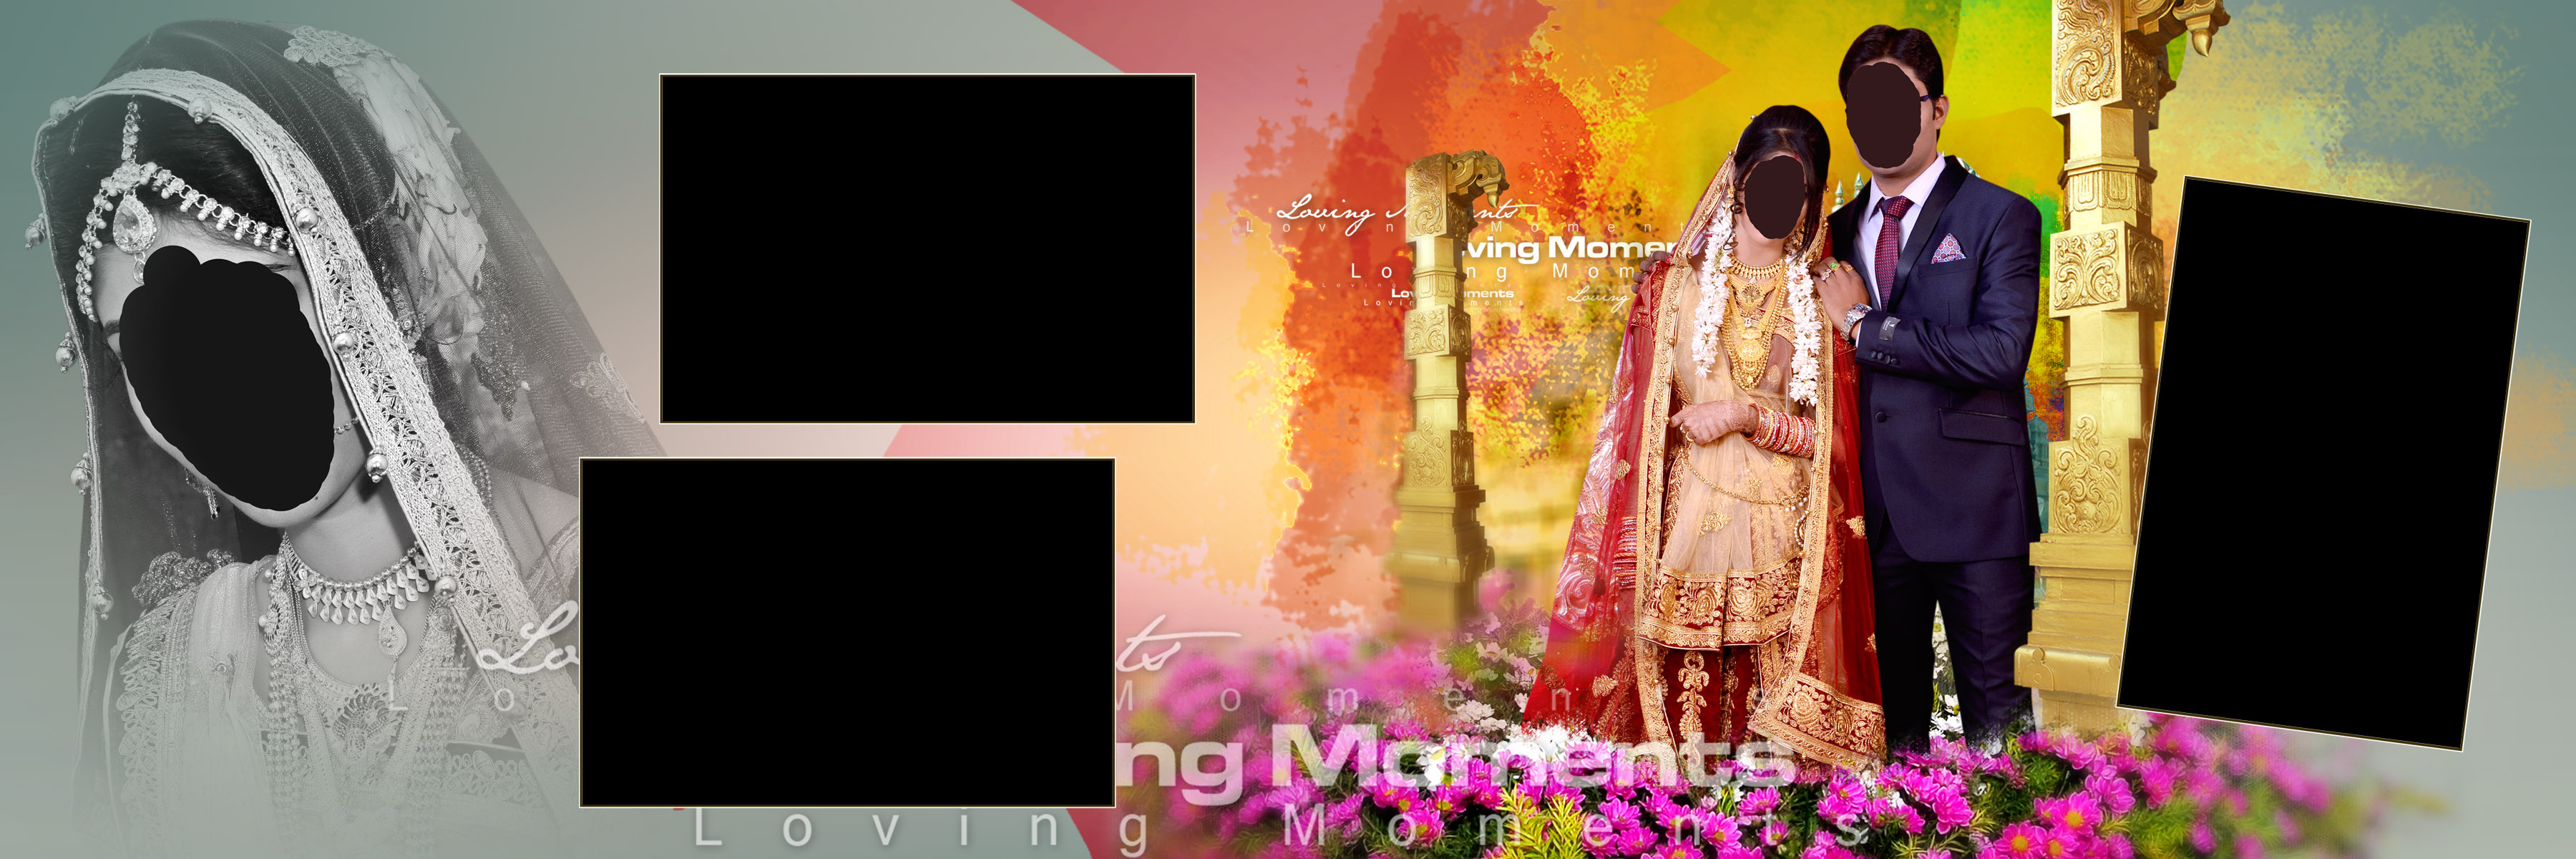 Wedding Album Design Psd Free Download 12x36 2017 لم يسبق له مثيل